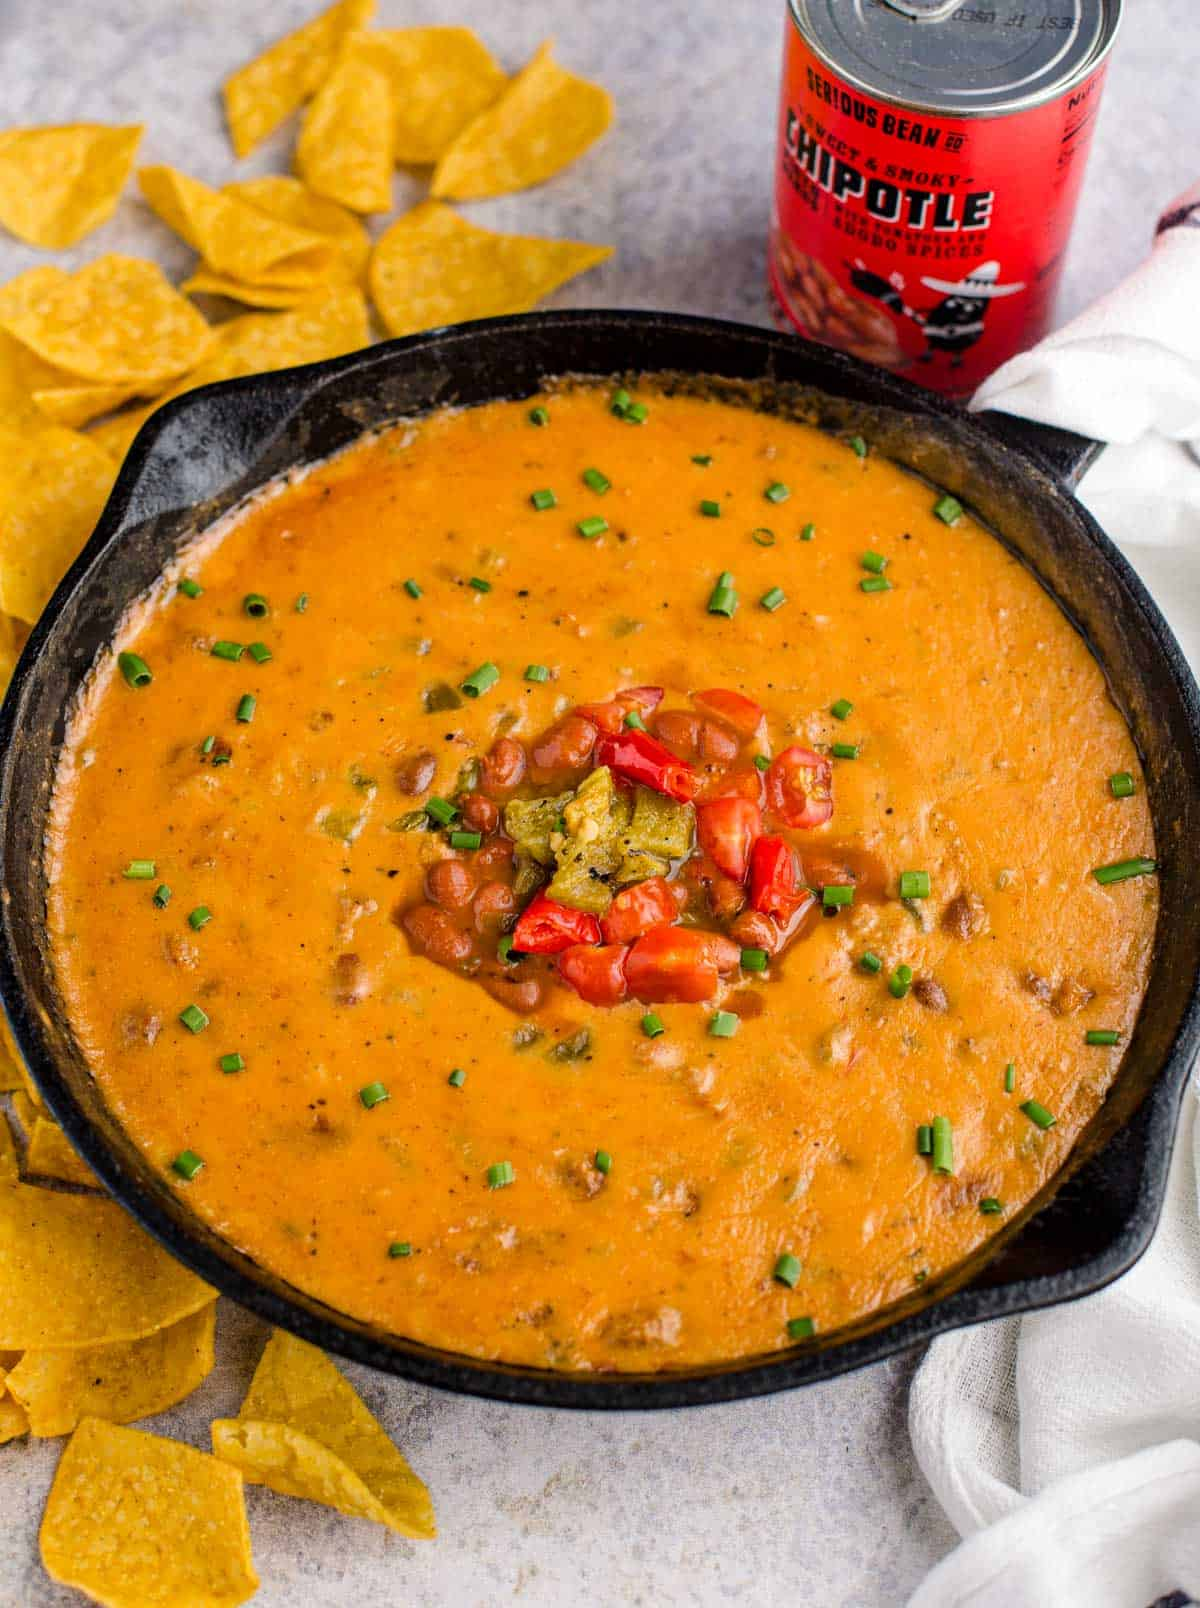 Sausage Queso Bean dip in a cast iron pan